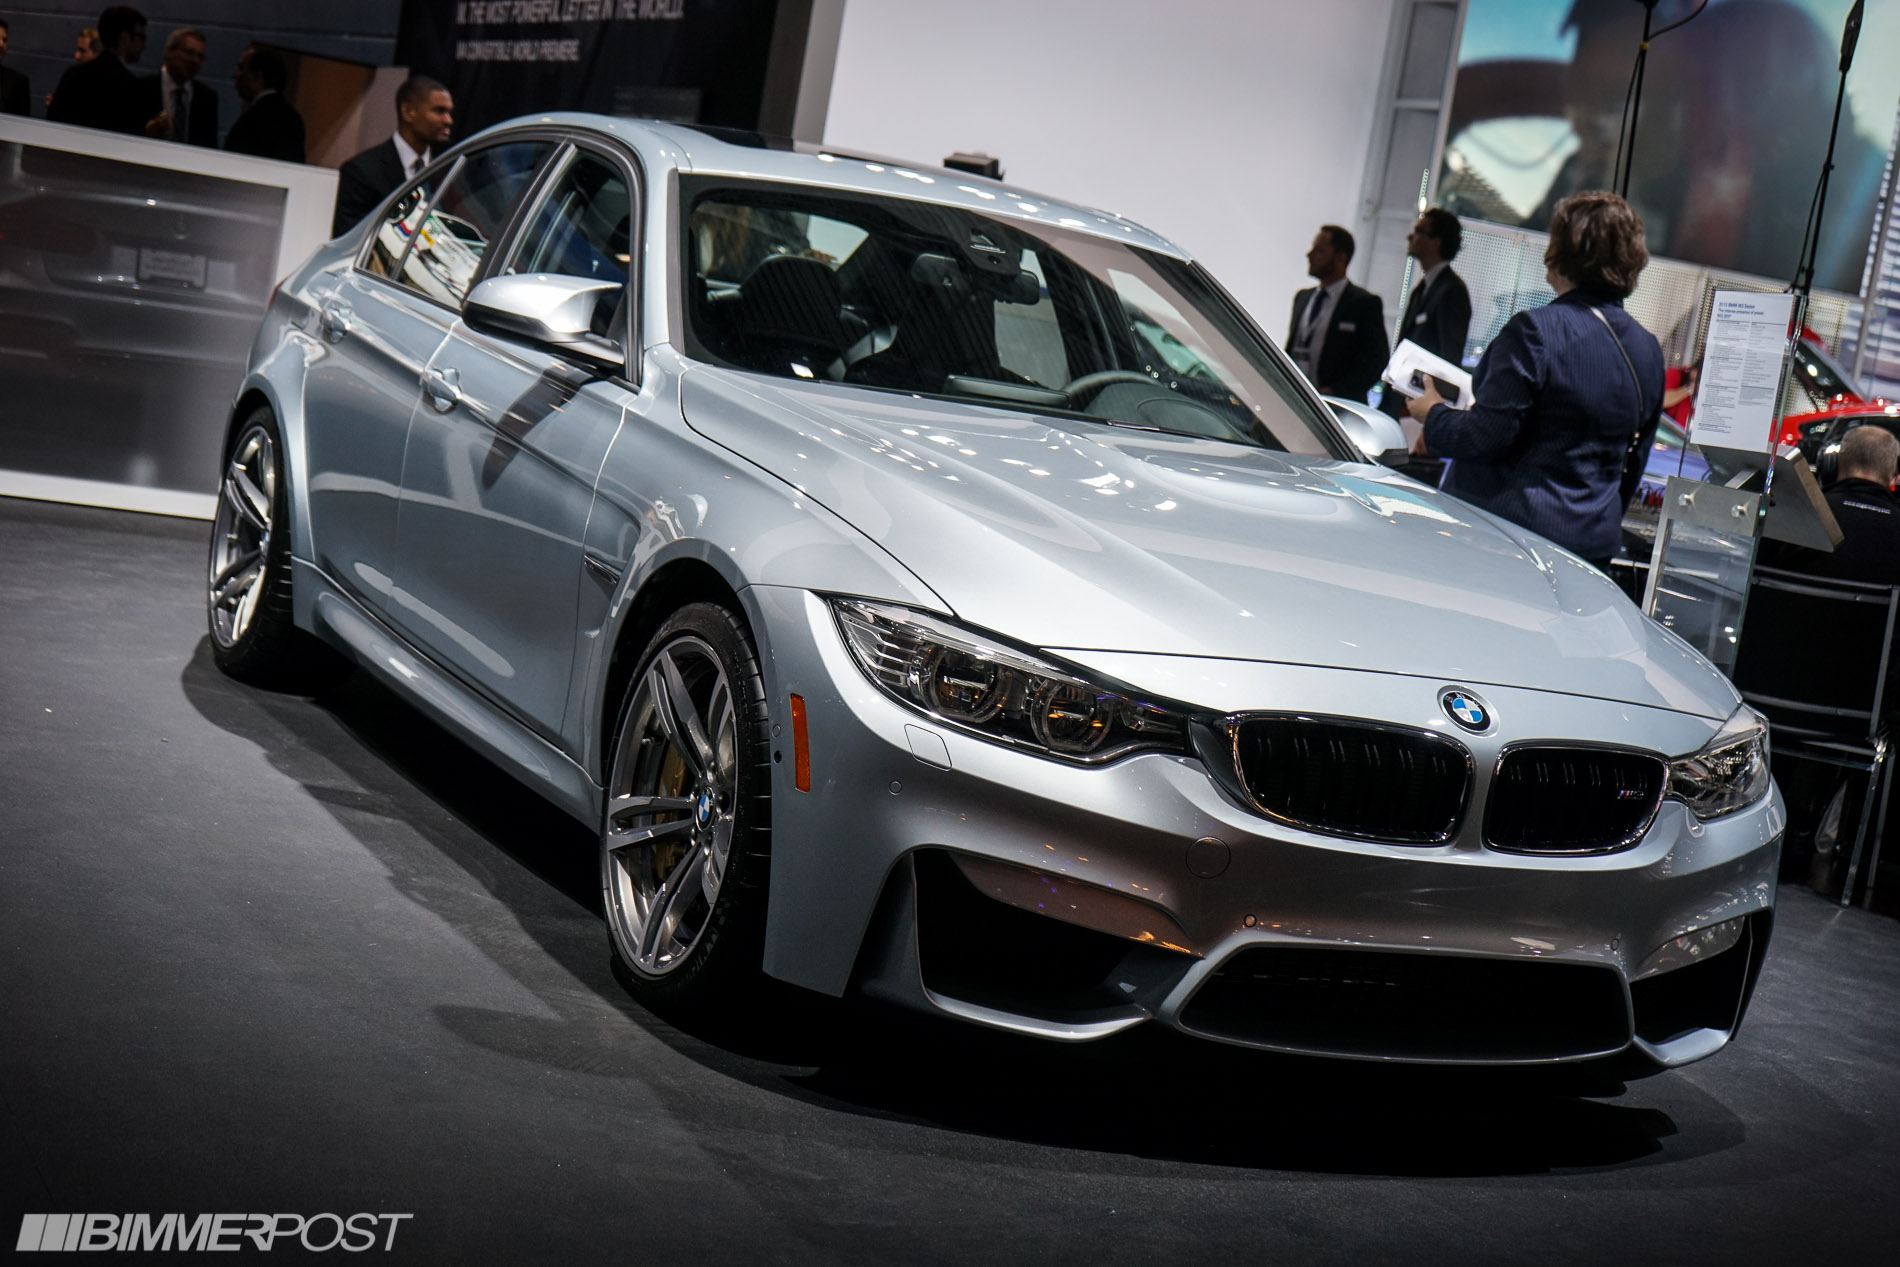 Bmw 335i Convertible >> BMW 2014 New York International Autoshow - BMW Forum, BMW